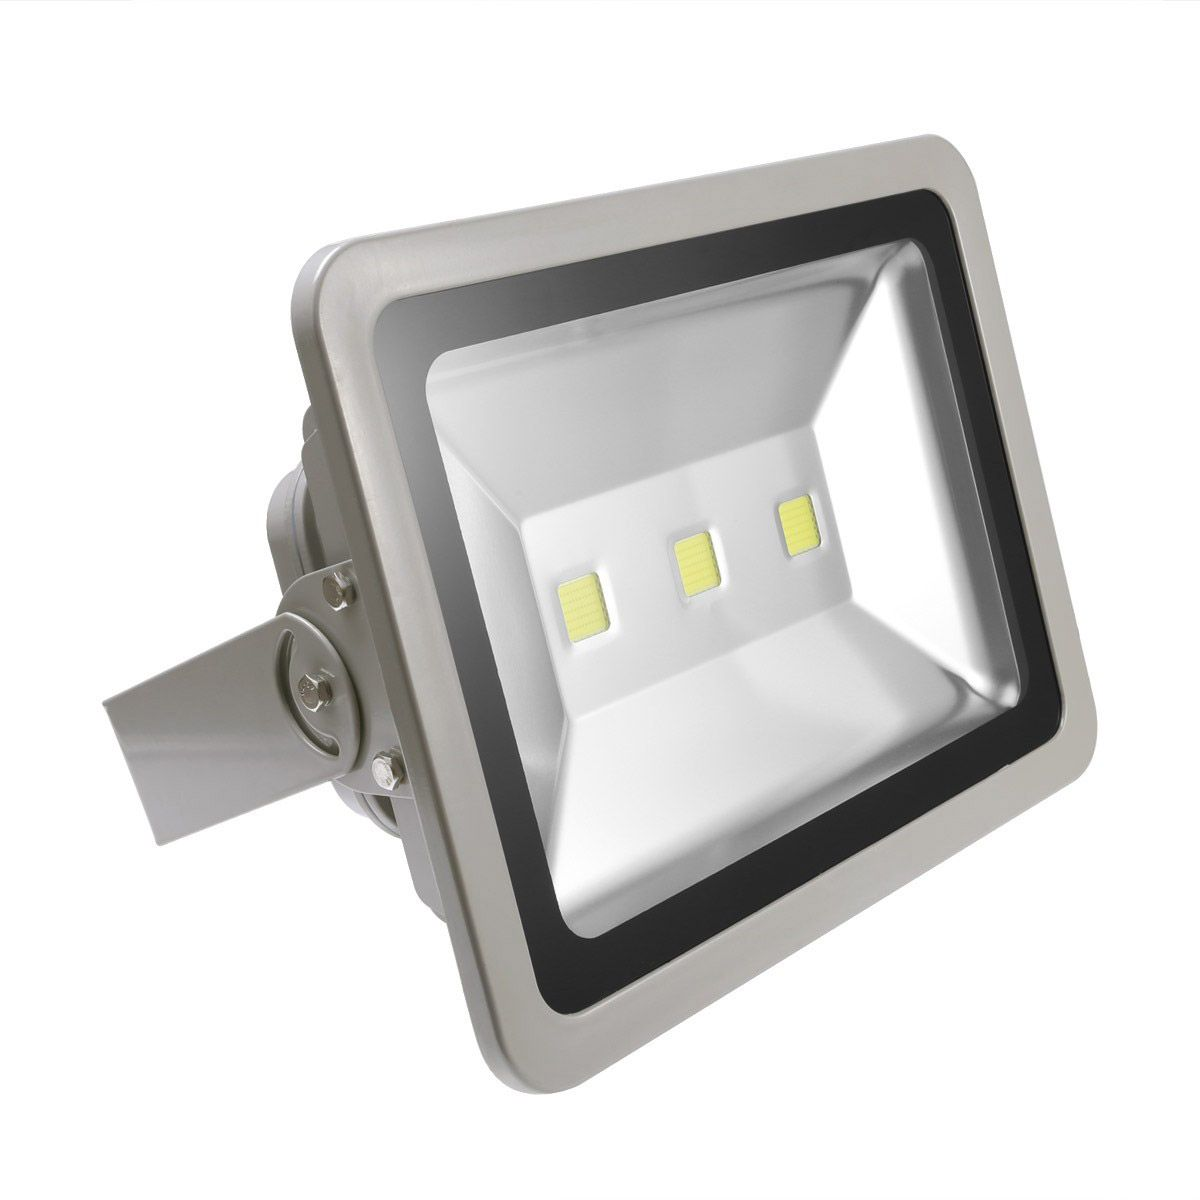 Led Outdoor Flood Light Bulbs Classy Choose From A Huge Range Of Highquality #durable And Powerful Inspiration Design